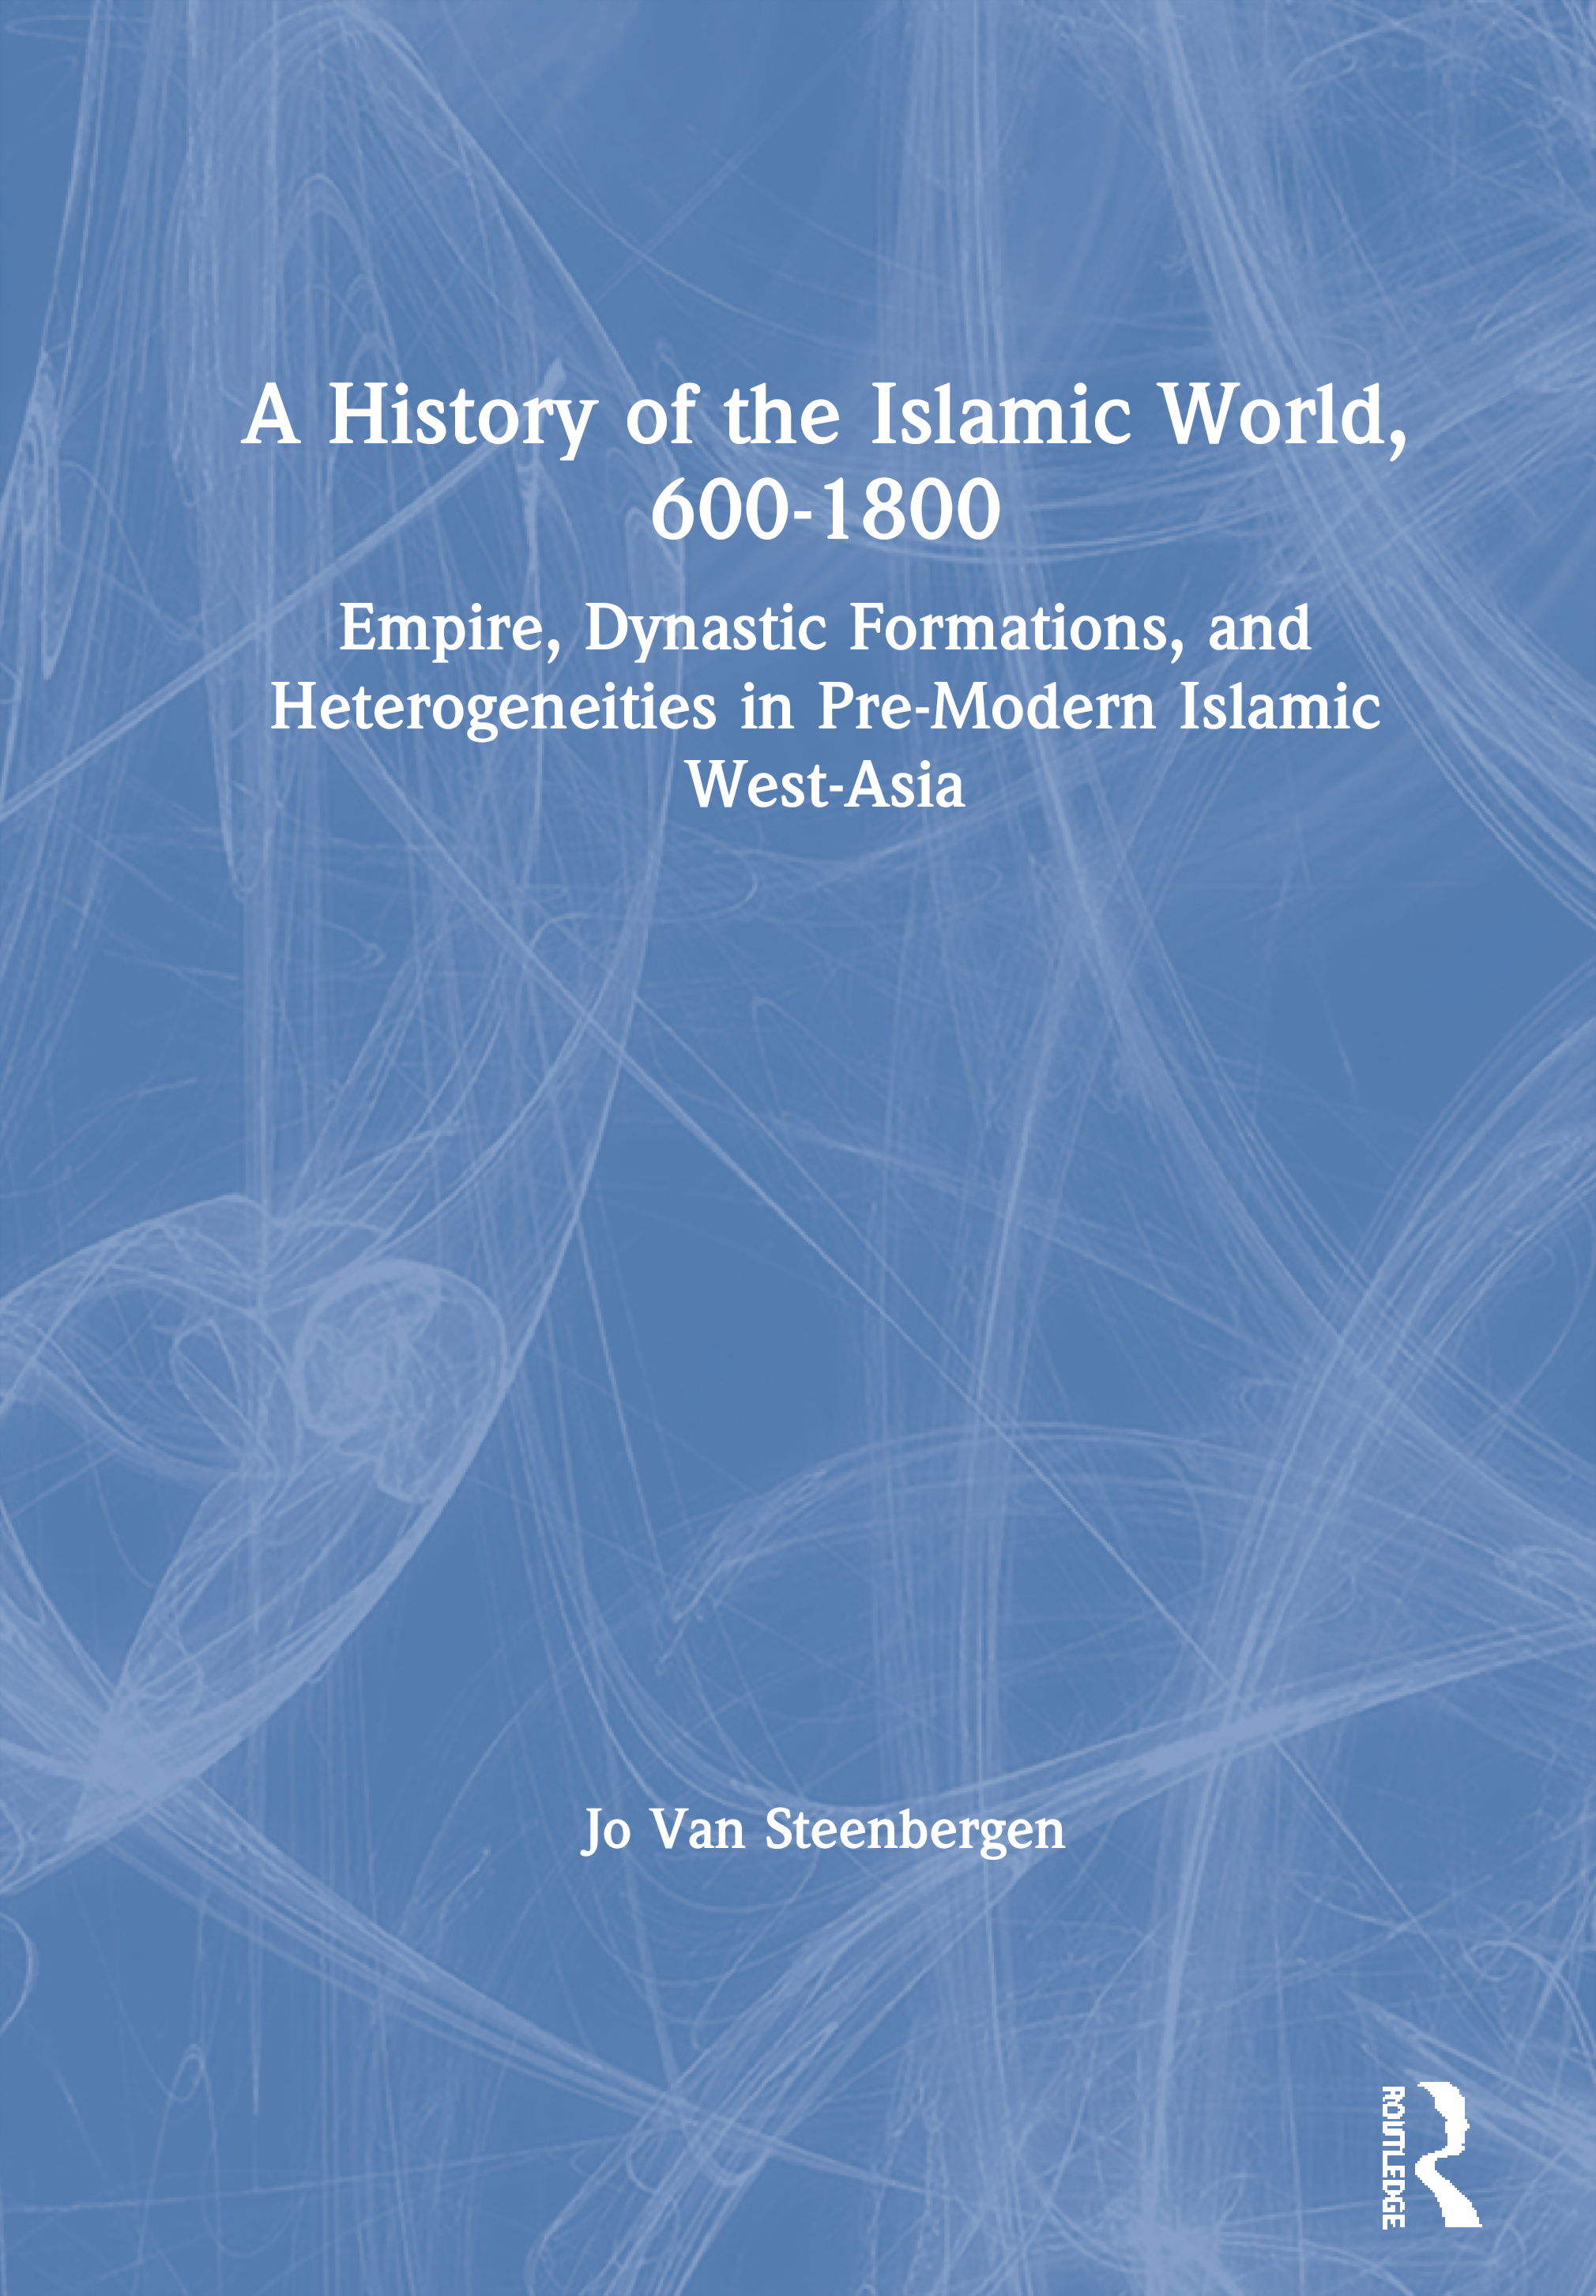 A History of the Islamic World, 600-1800: Empire, Dynastic Formations, and Heterogeneities in Pre-Modern Islamic West-Asia book cover